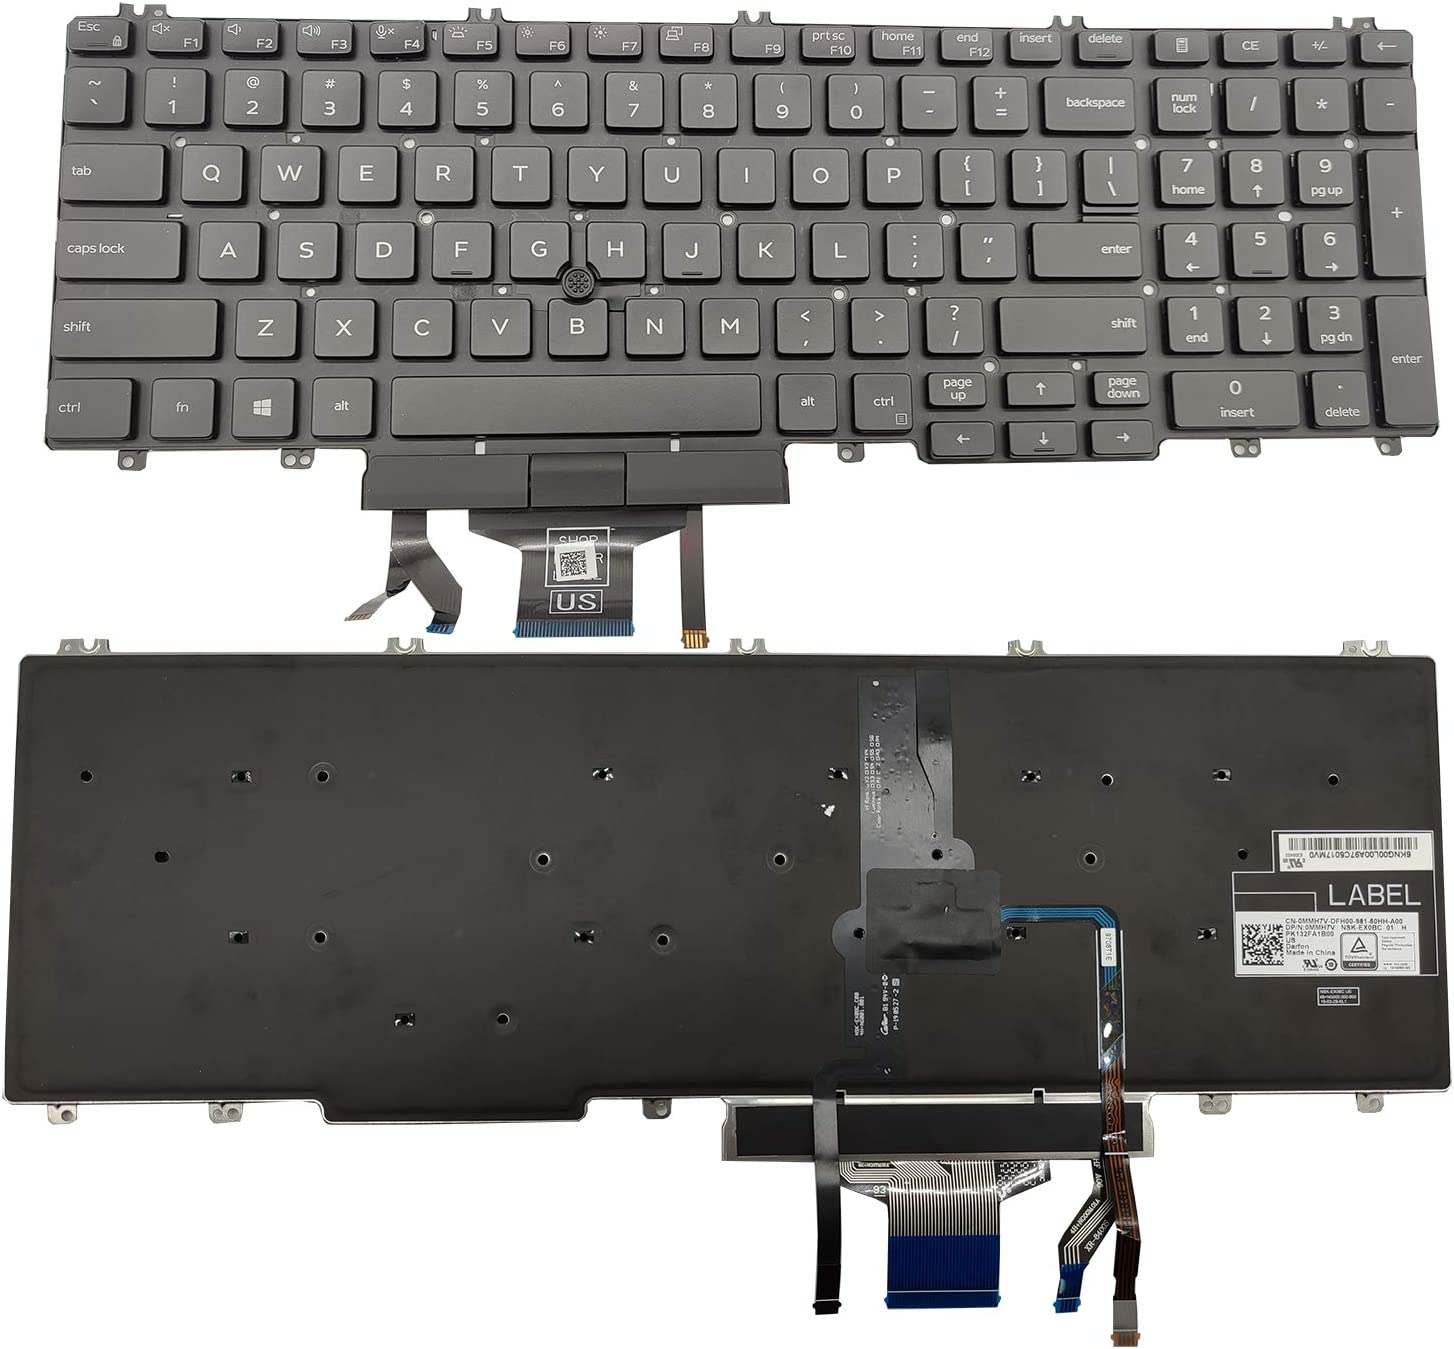 Moon2020 Replacement Keyboard Compatible with Dell Precision 3500 3501 3540 3541, Latitude 5500 5501 5510 Laptop with Backlit with Pointer US Layout 0MMHTV PK132FA1B00 NSK-EX0BC 01 0MMHTV